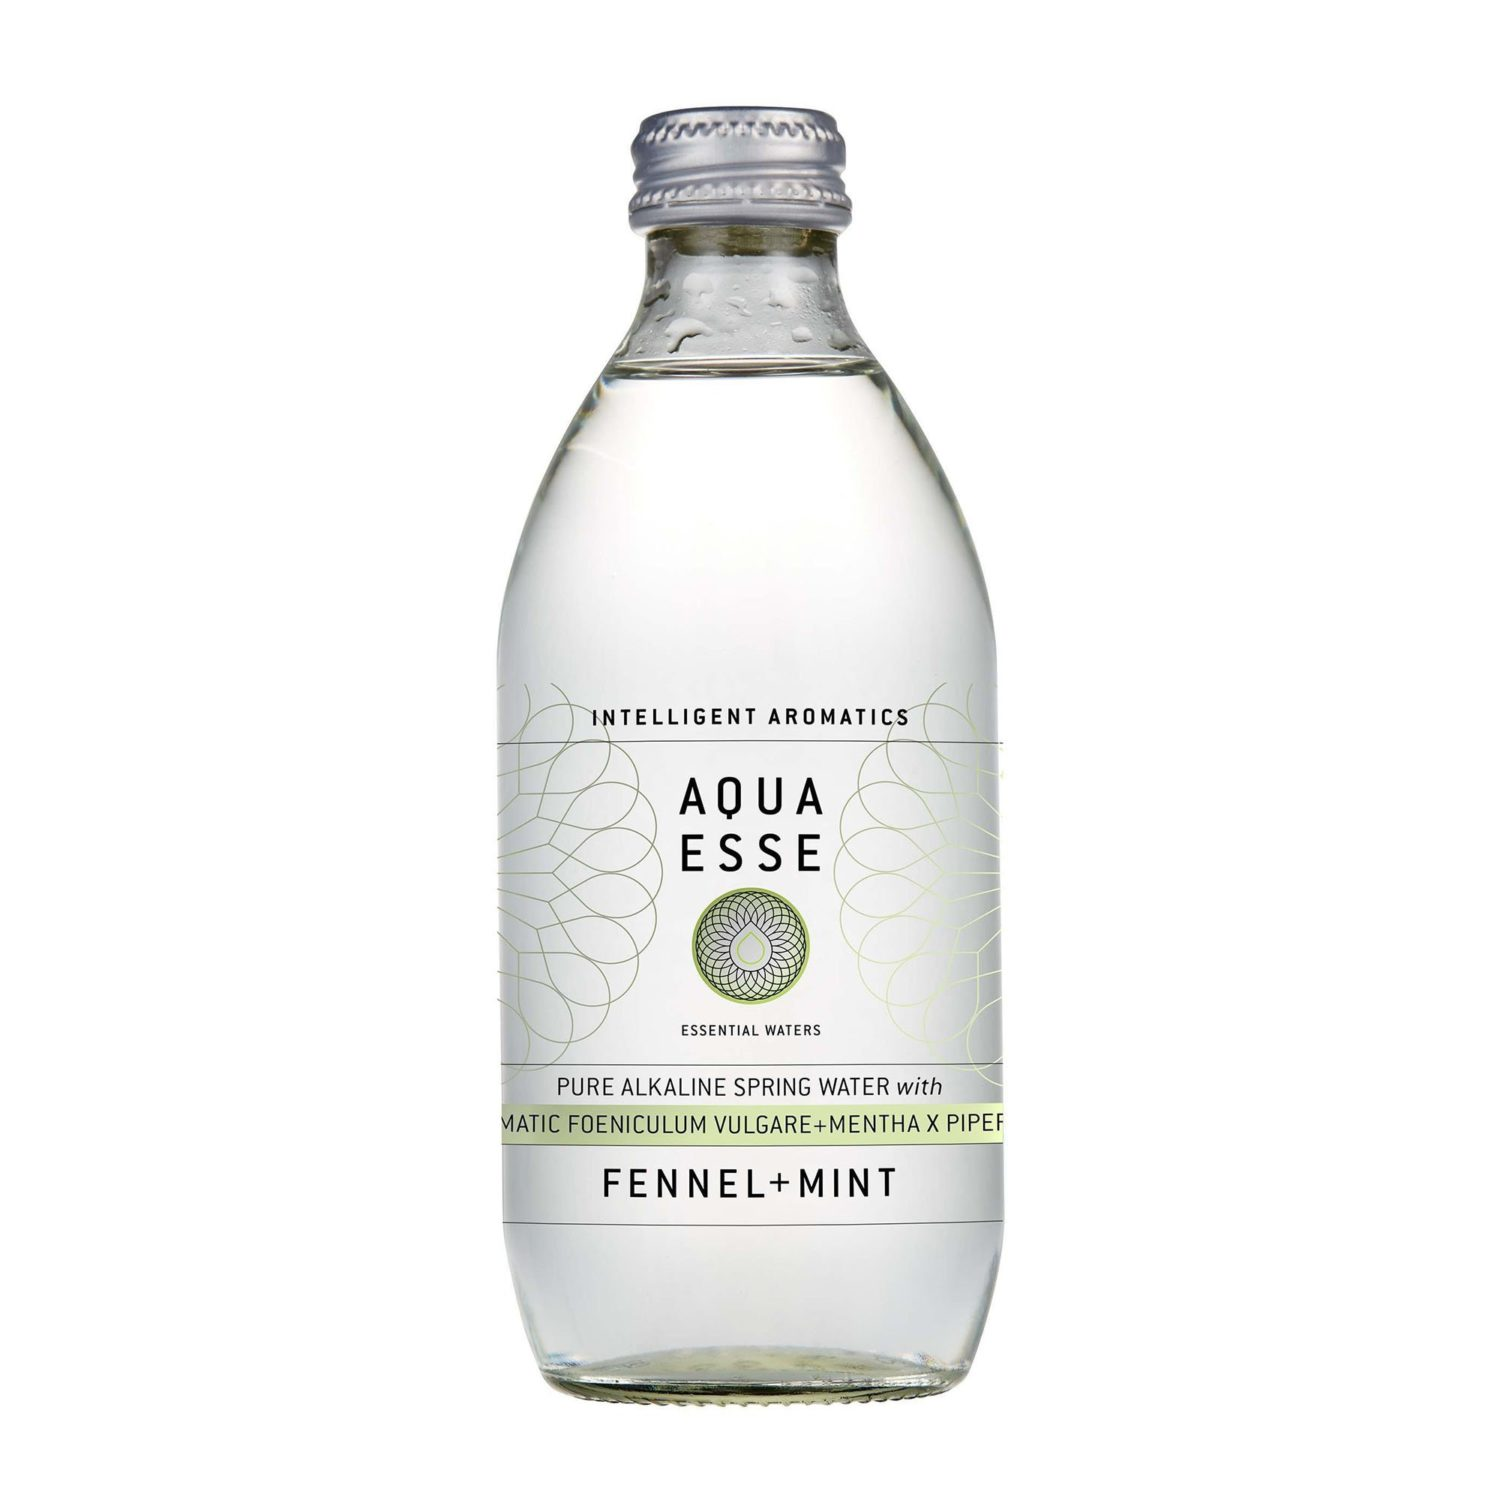 AQUA ESSE Fennel + Mint Watershop